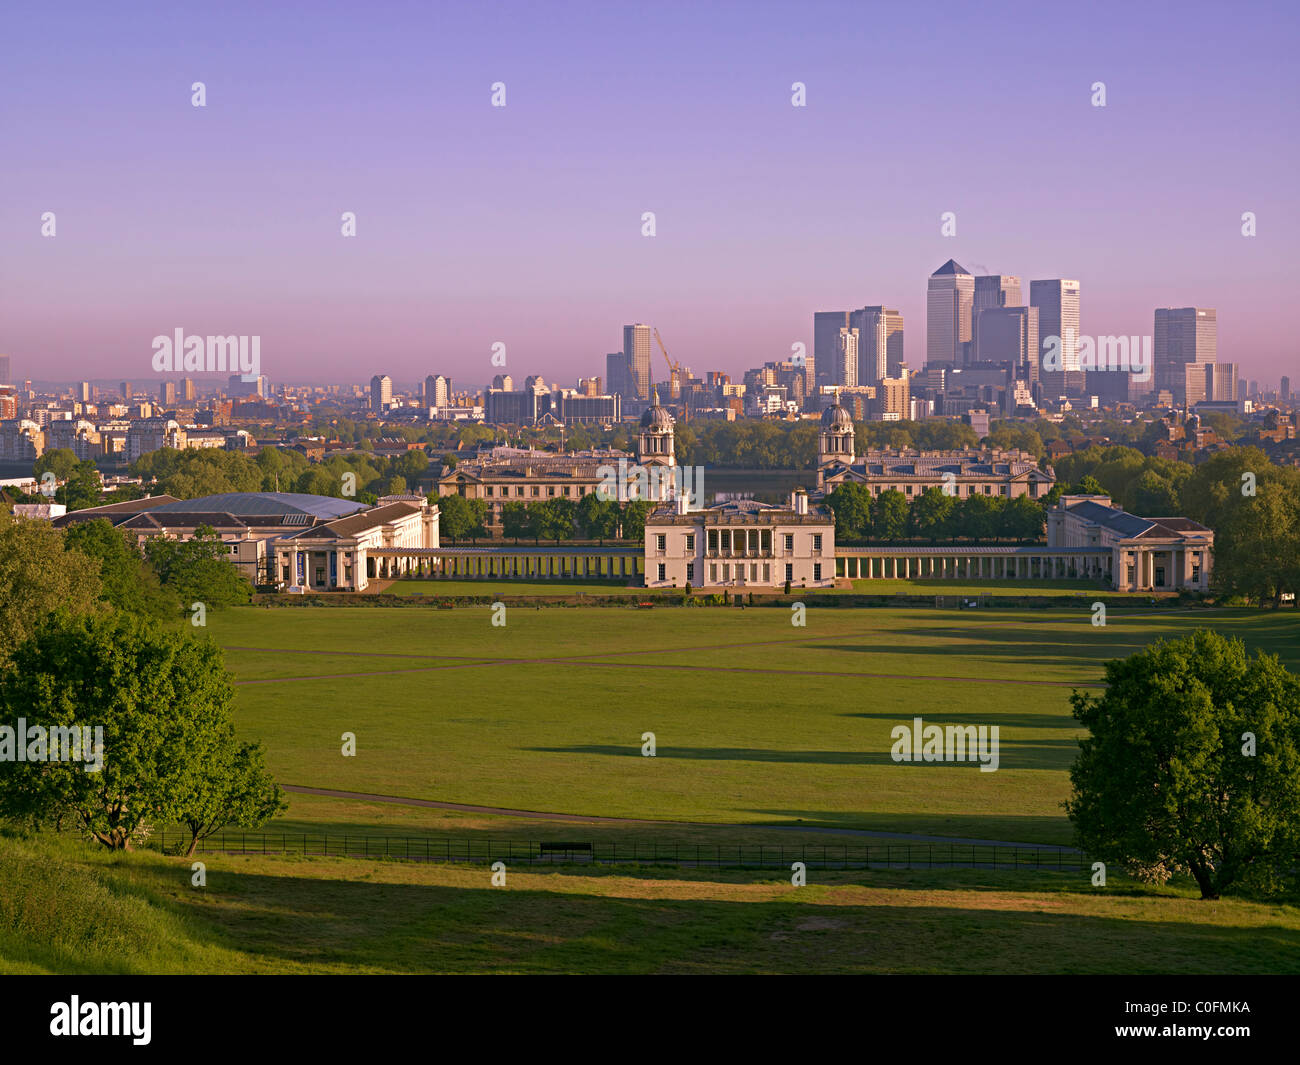 Early morning view of the city of London financial district from Greenwich Park - Stock Image